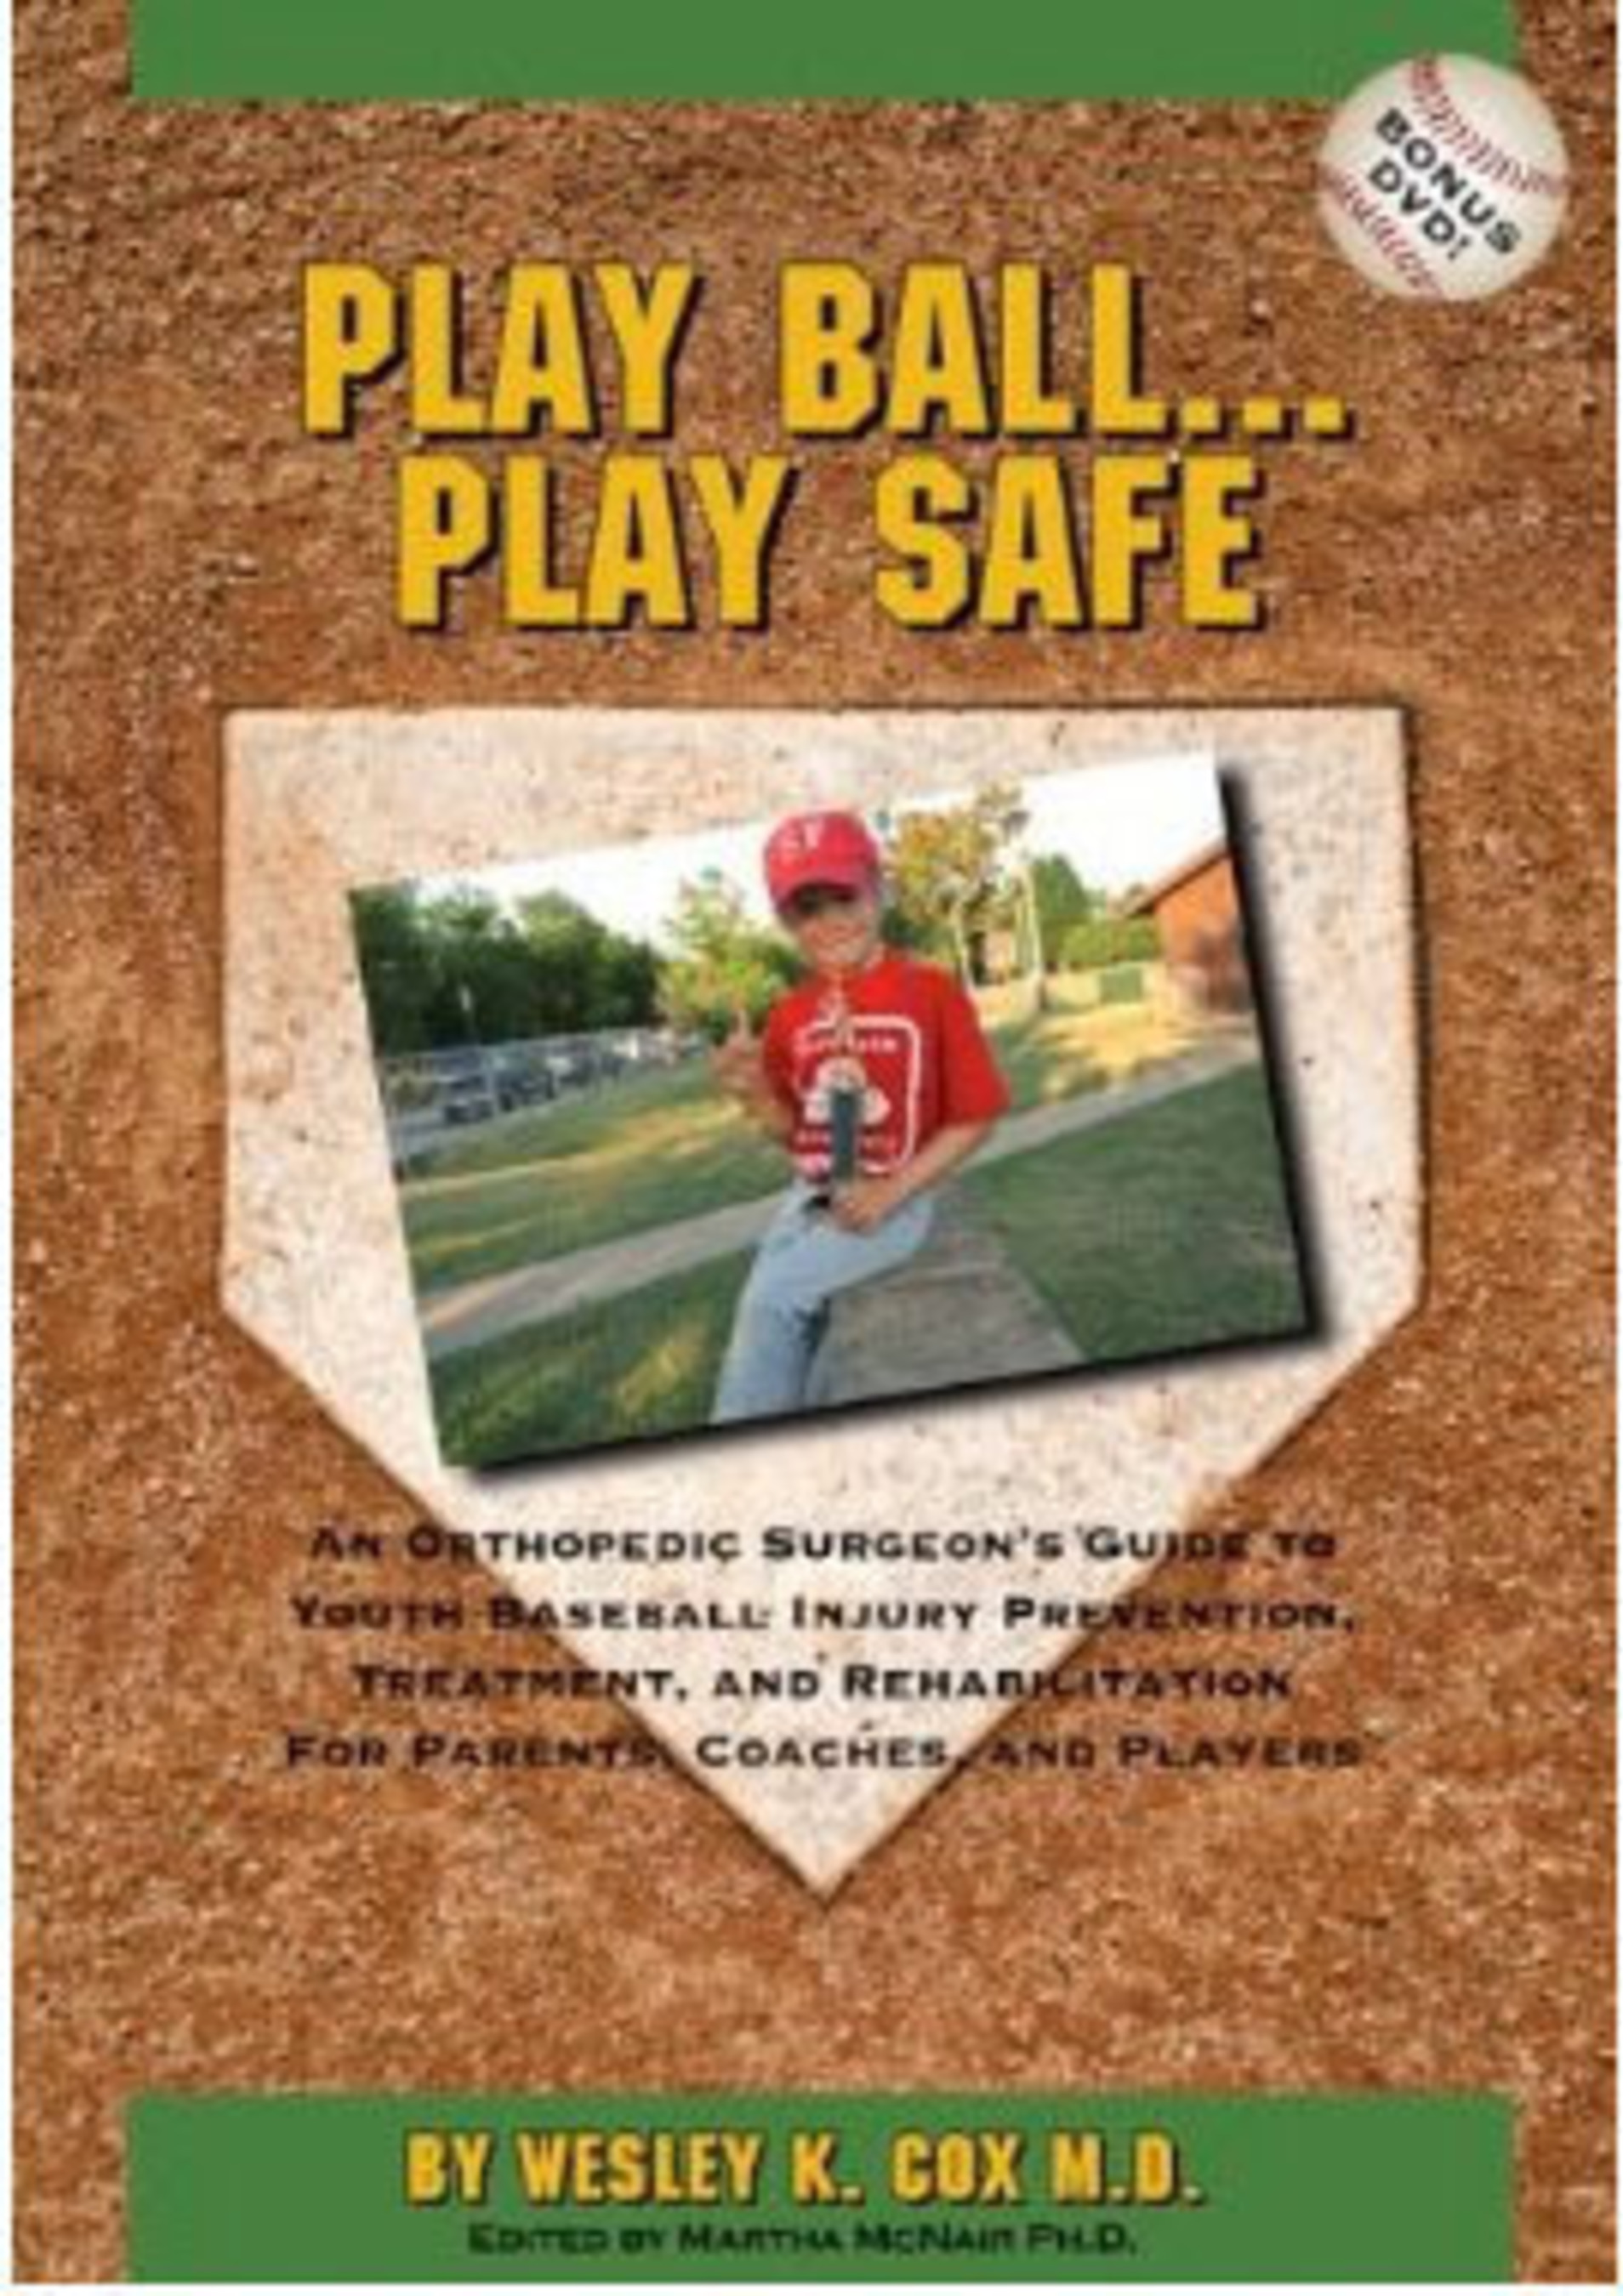 New book Play Ball... Play Safe by Wesley K. Cox M.D.  (PRNewsFoto/Dr. Wesley Cox)